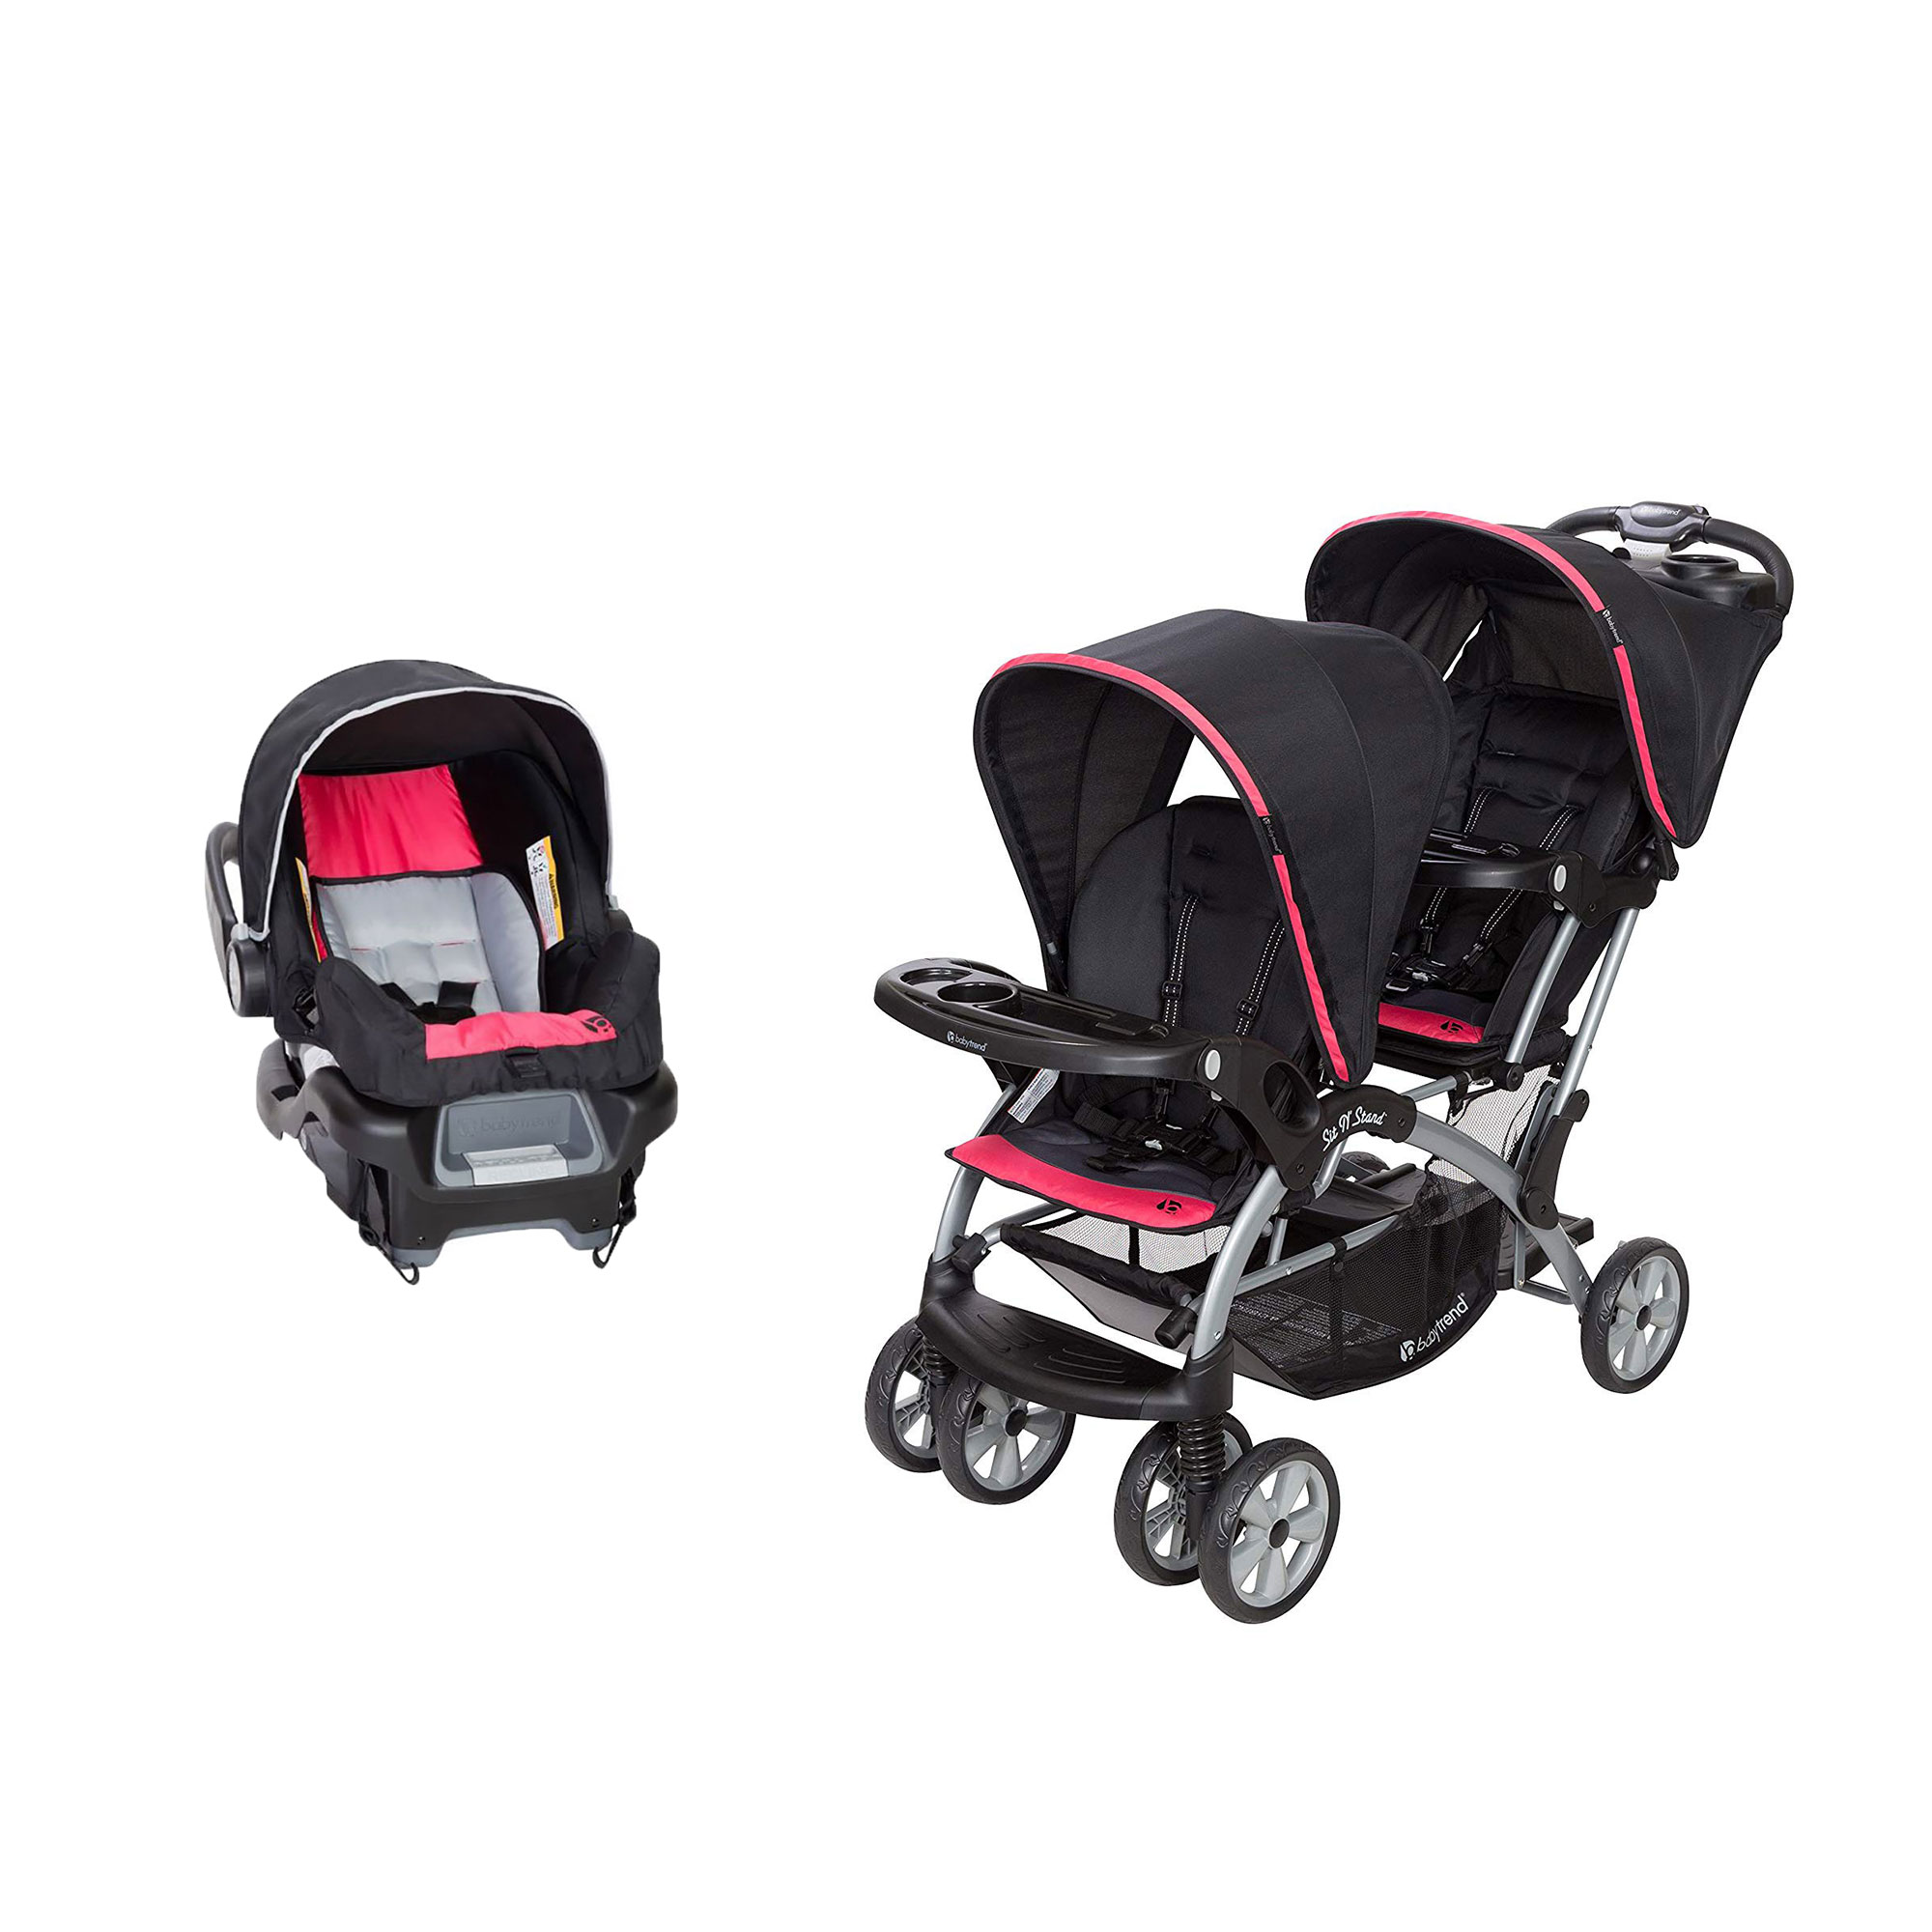 Details About Baby Trend Double Sit N Stand Stroller System And Travel Car Seat Optic Pink